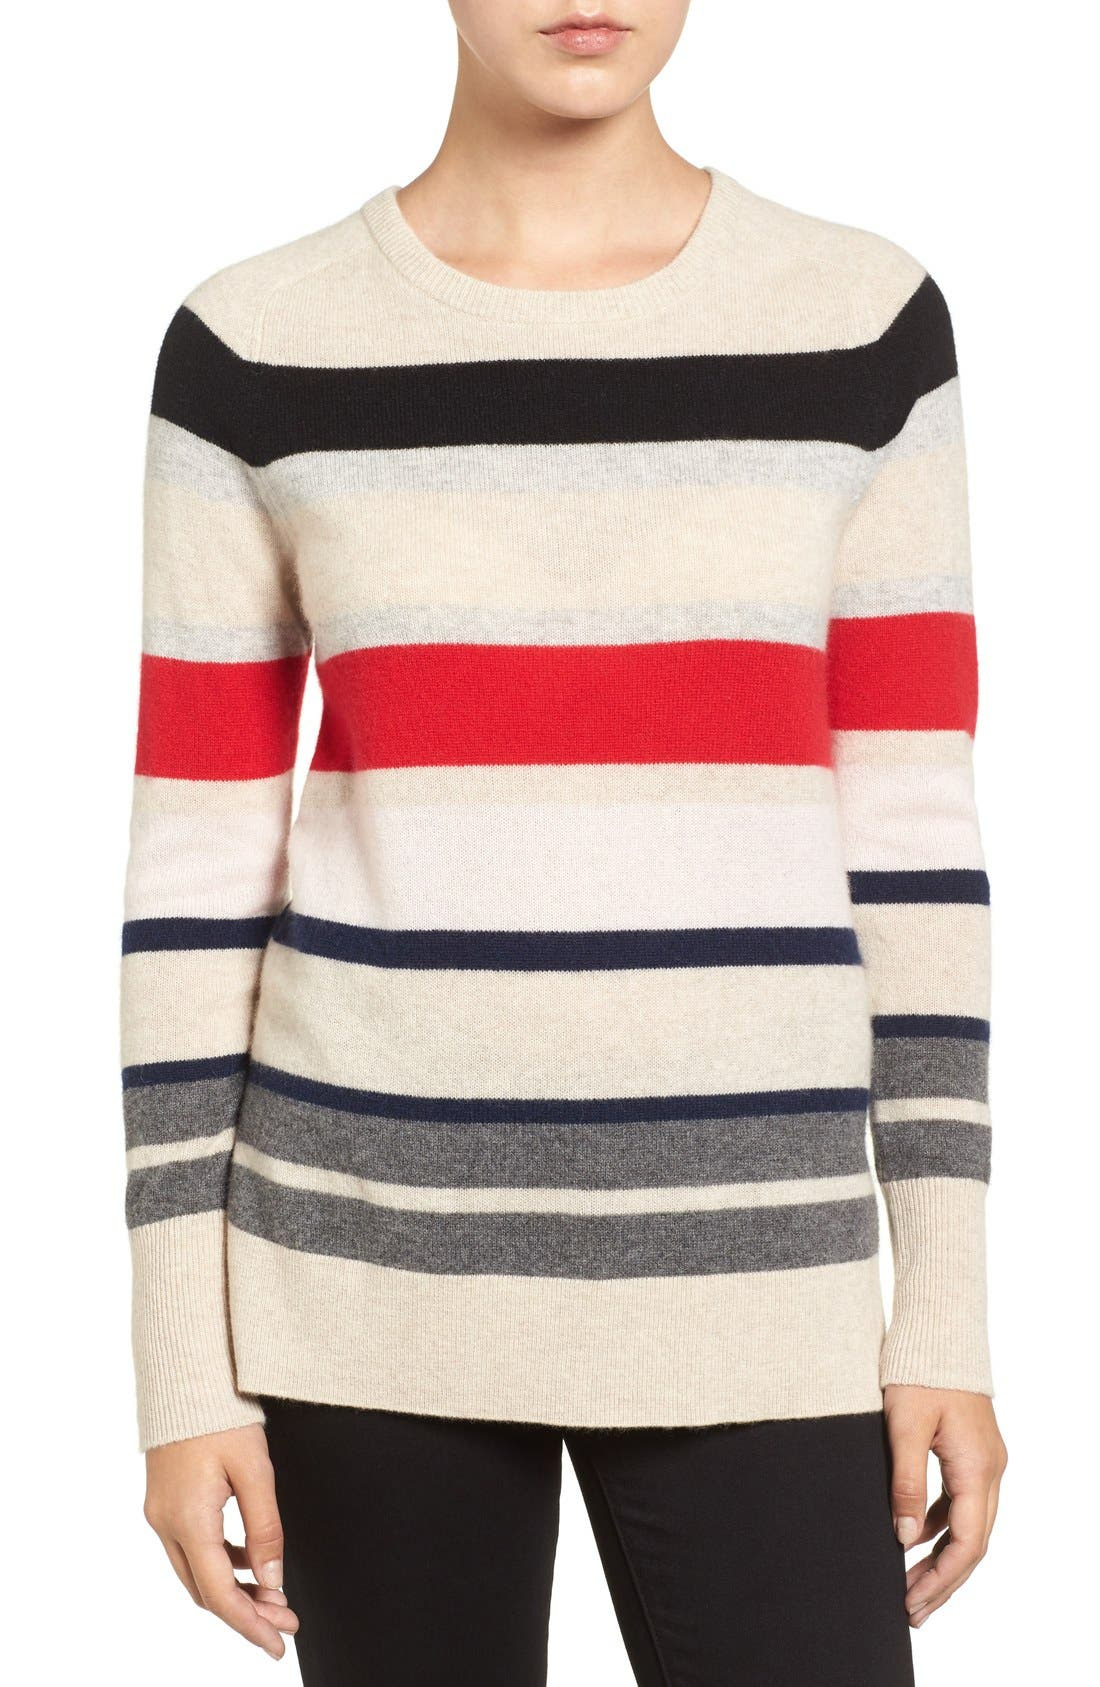 Alternate Image 1 Selected - Halogen® Patterned Cashmere Sweater (Regular & Petite)